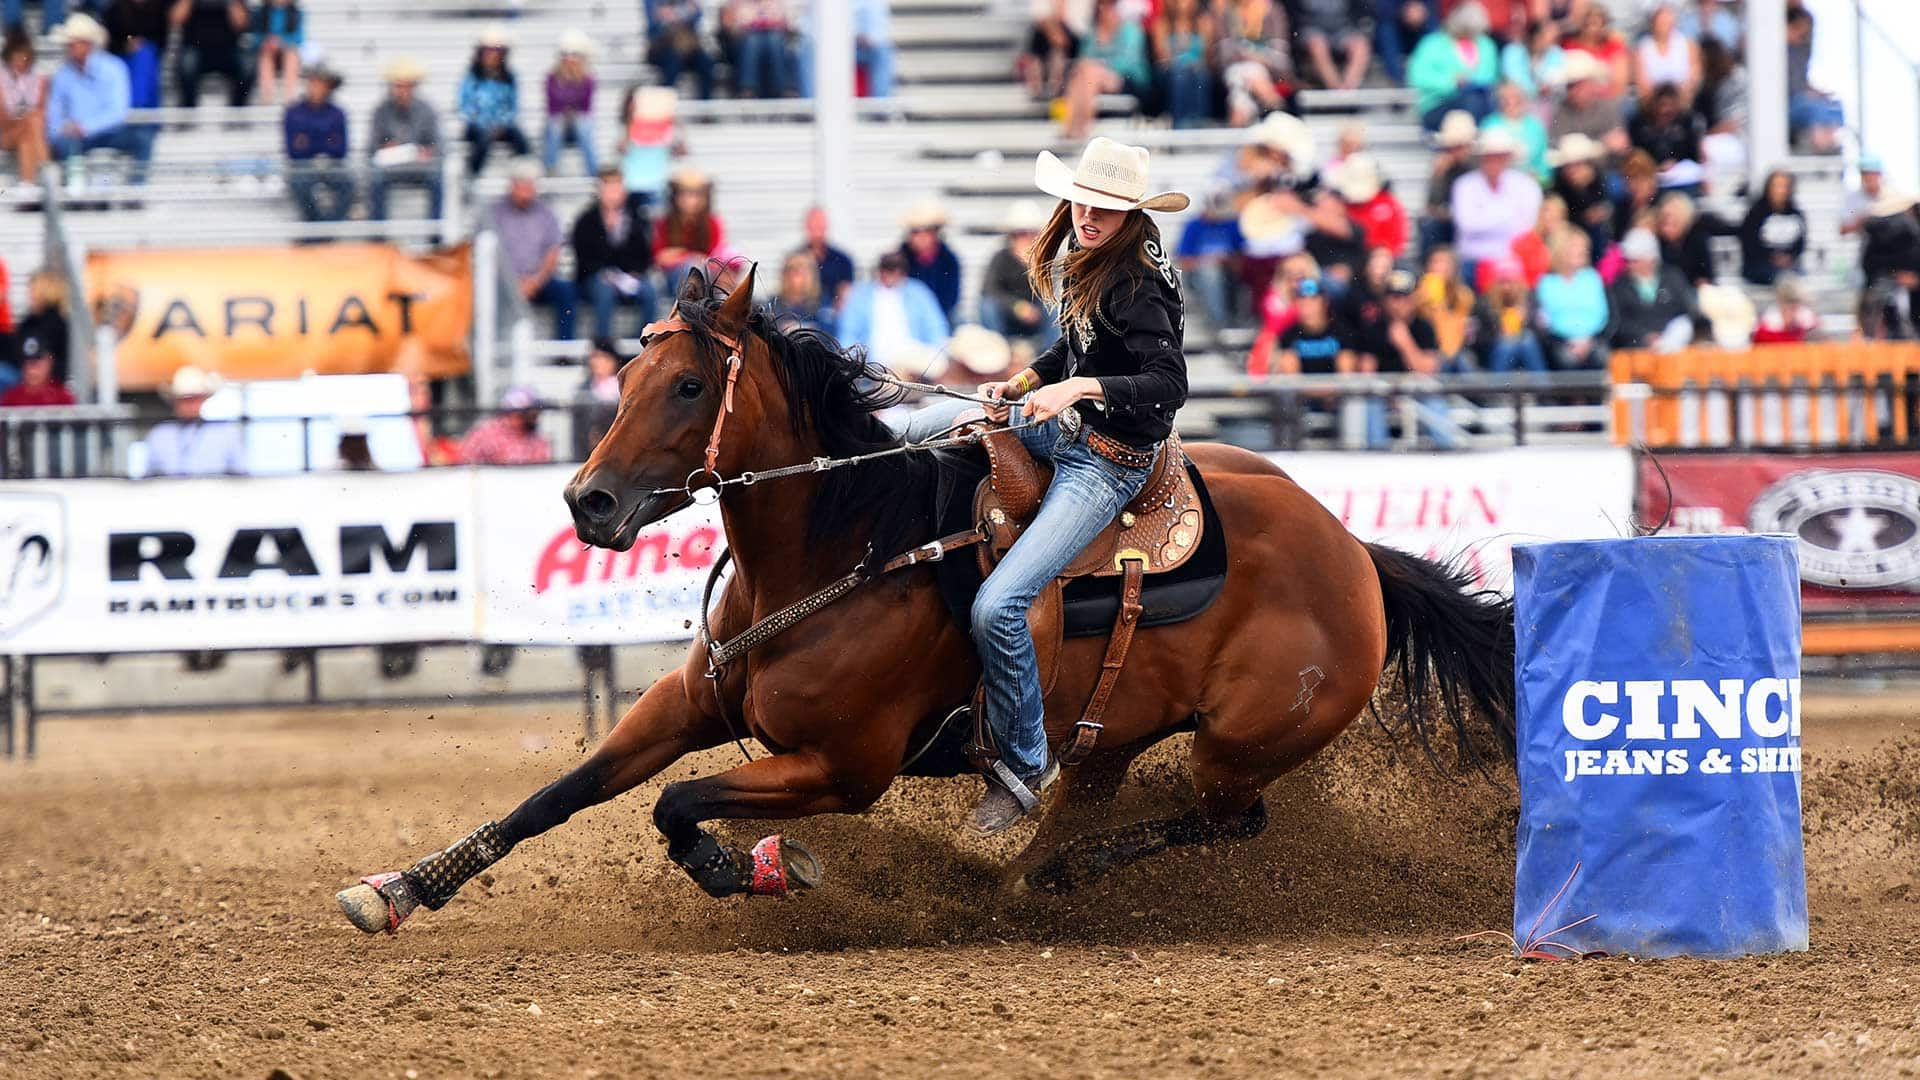 Canadian Teen Cowboys And Cowgirls Compete To Become Rodeo